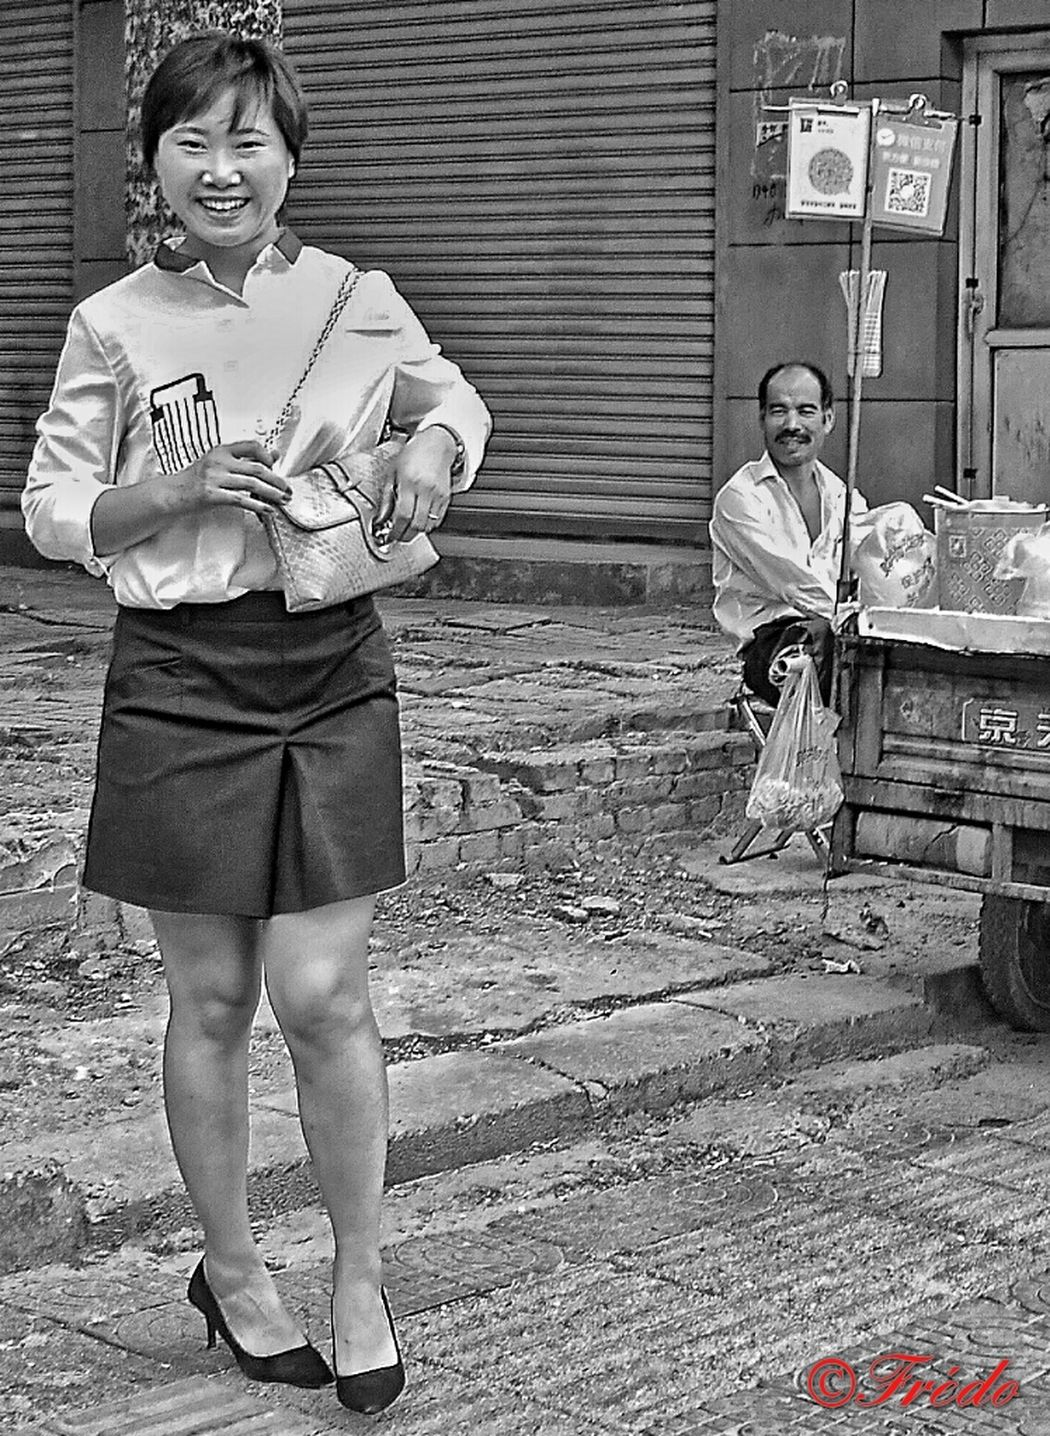 De Si Beaux Sourires Sourire. Smile Sourire Aux Levres Women Who Inspire You Lovely Girl Day Streetphoto_bw Street Photography China China Beauty China Photos Beijing, China BEIJING北京CHINA中国BEAUTY